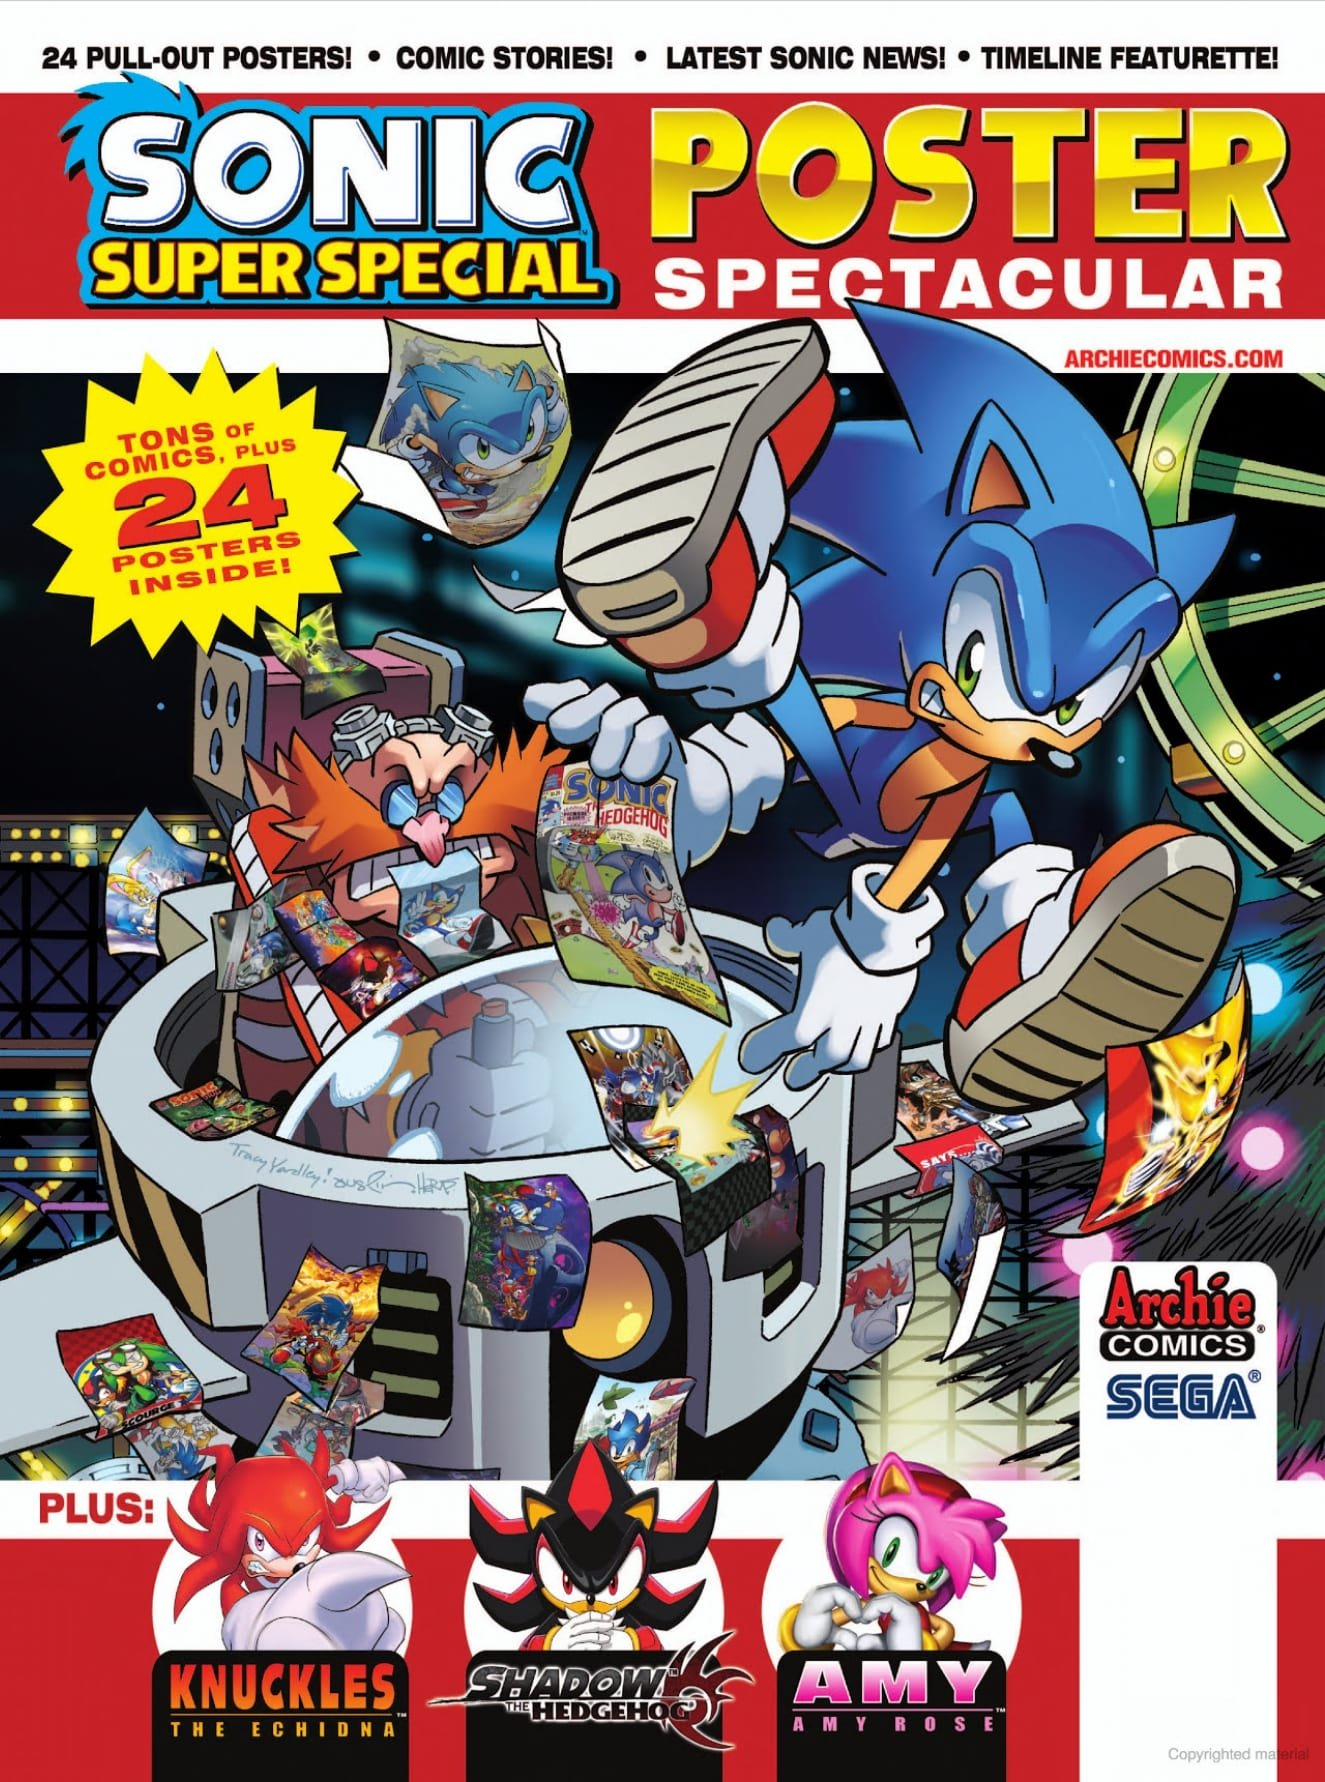 Sonic Super Special Magazine 05 (January 2013)